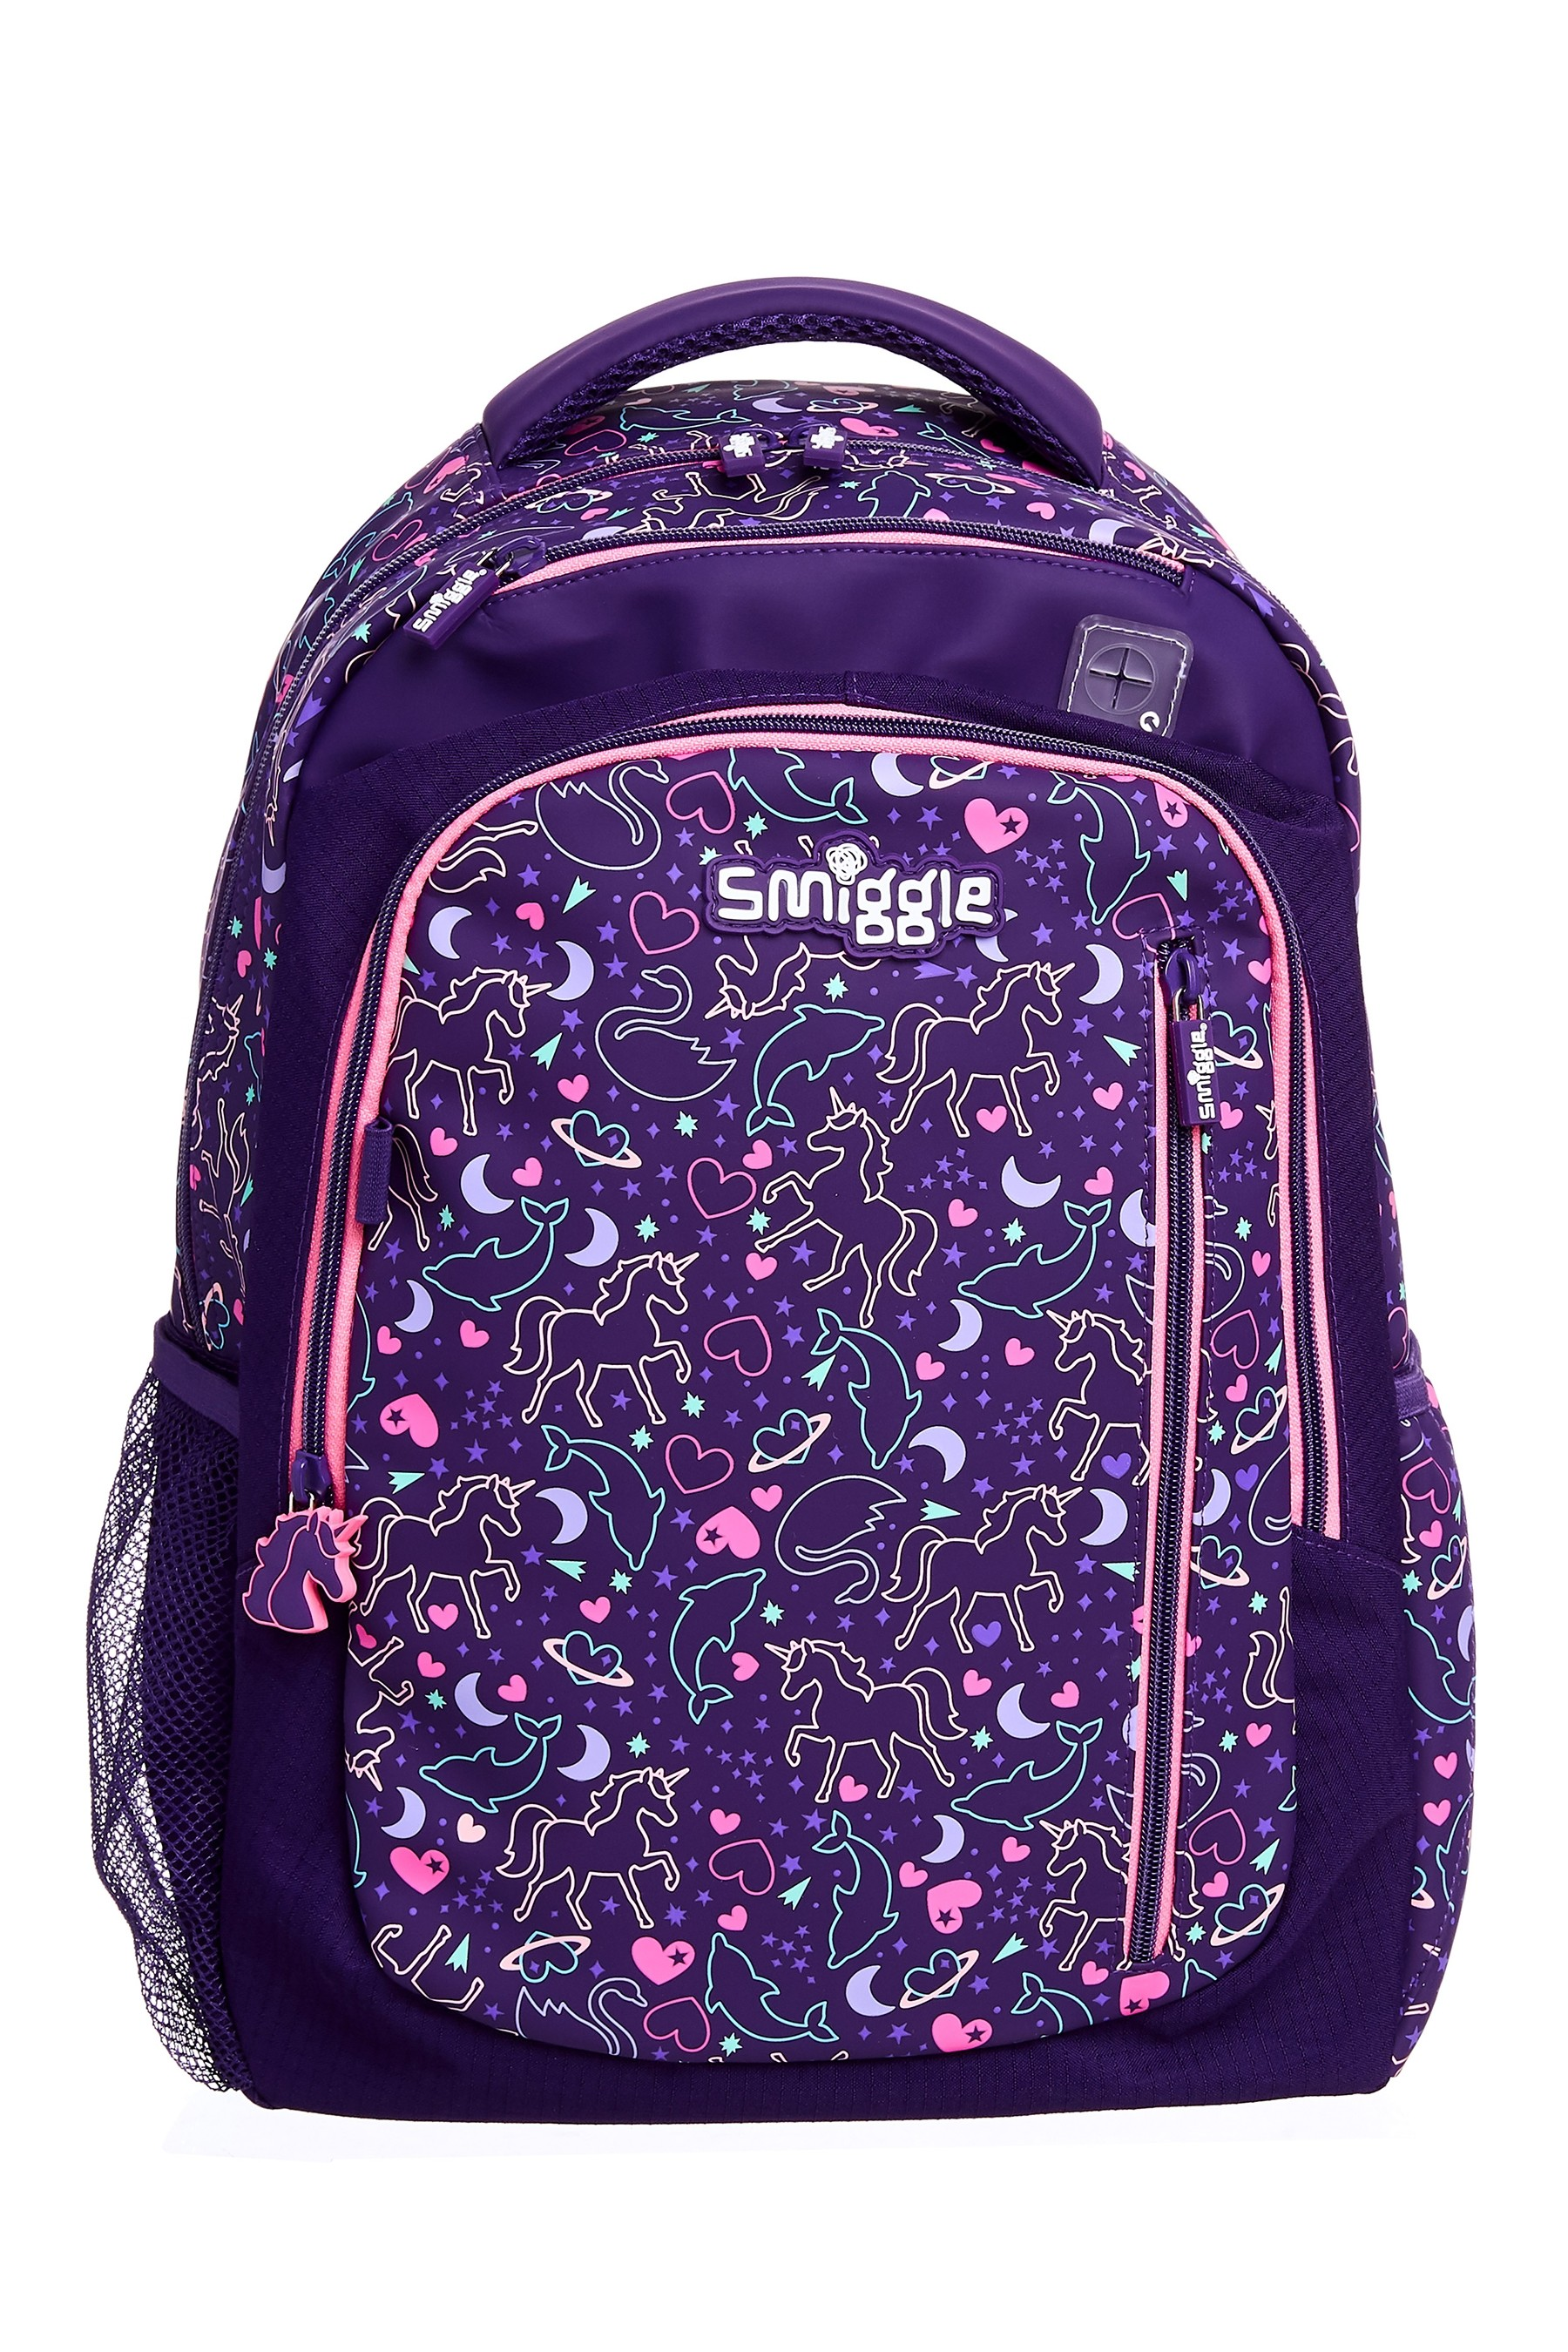 ❤ Girls SMIGGLE Lilac Fave Backpack School Bag Rucksack NEW RARE book